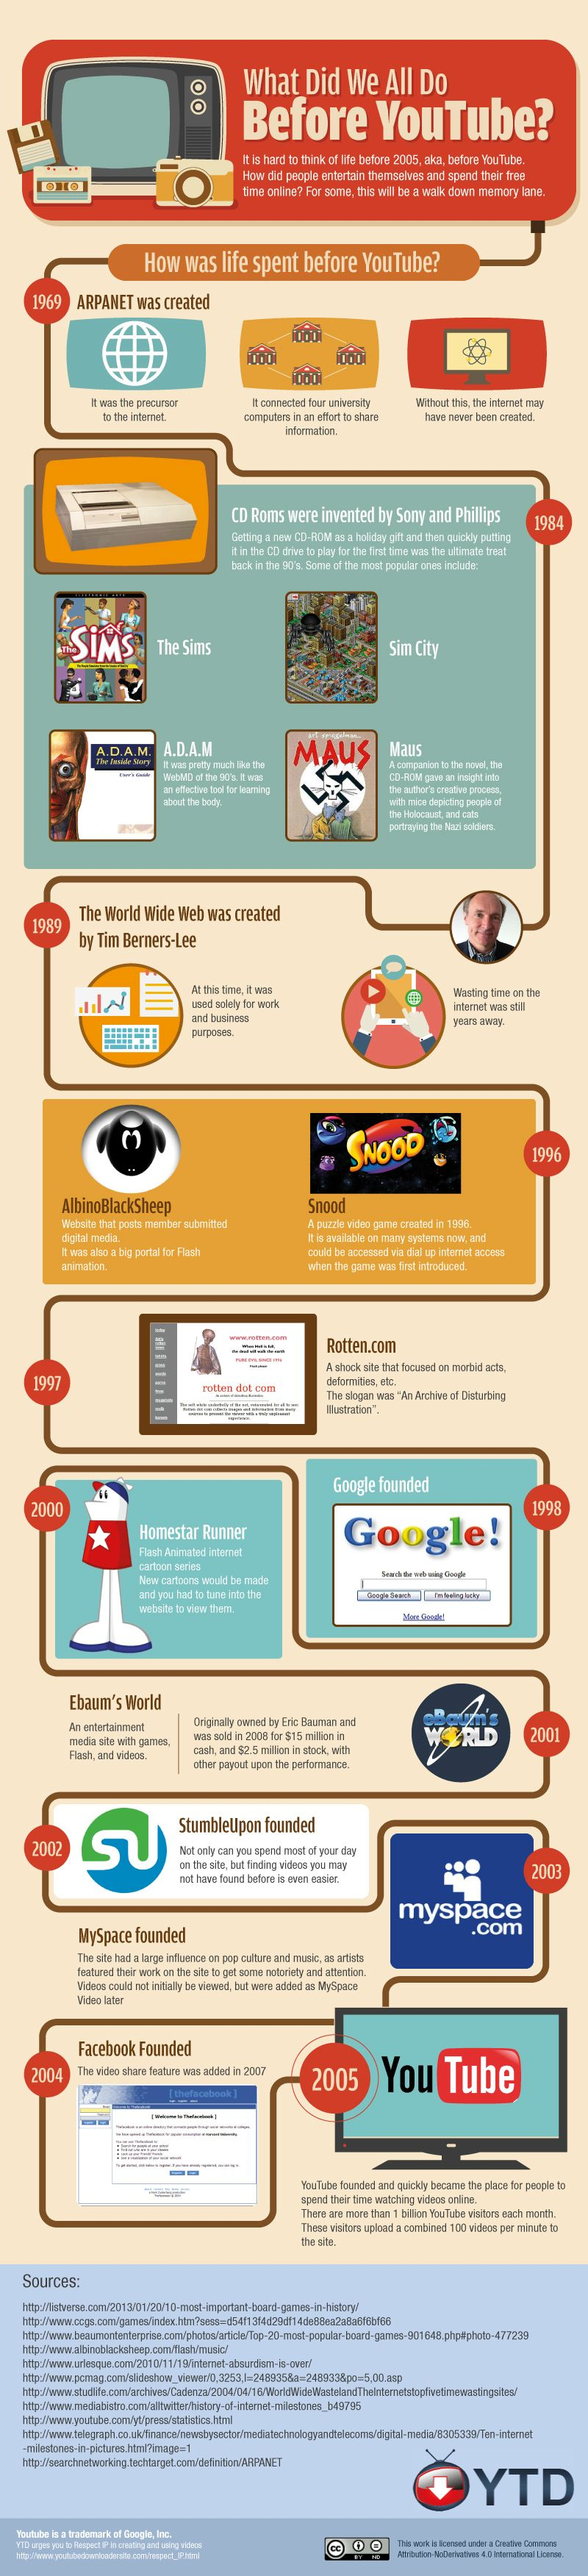 What Did We All Do Before YouTube? [infographic]